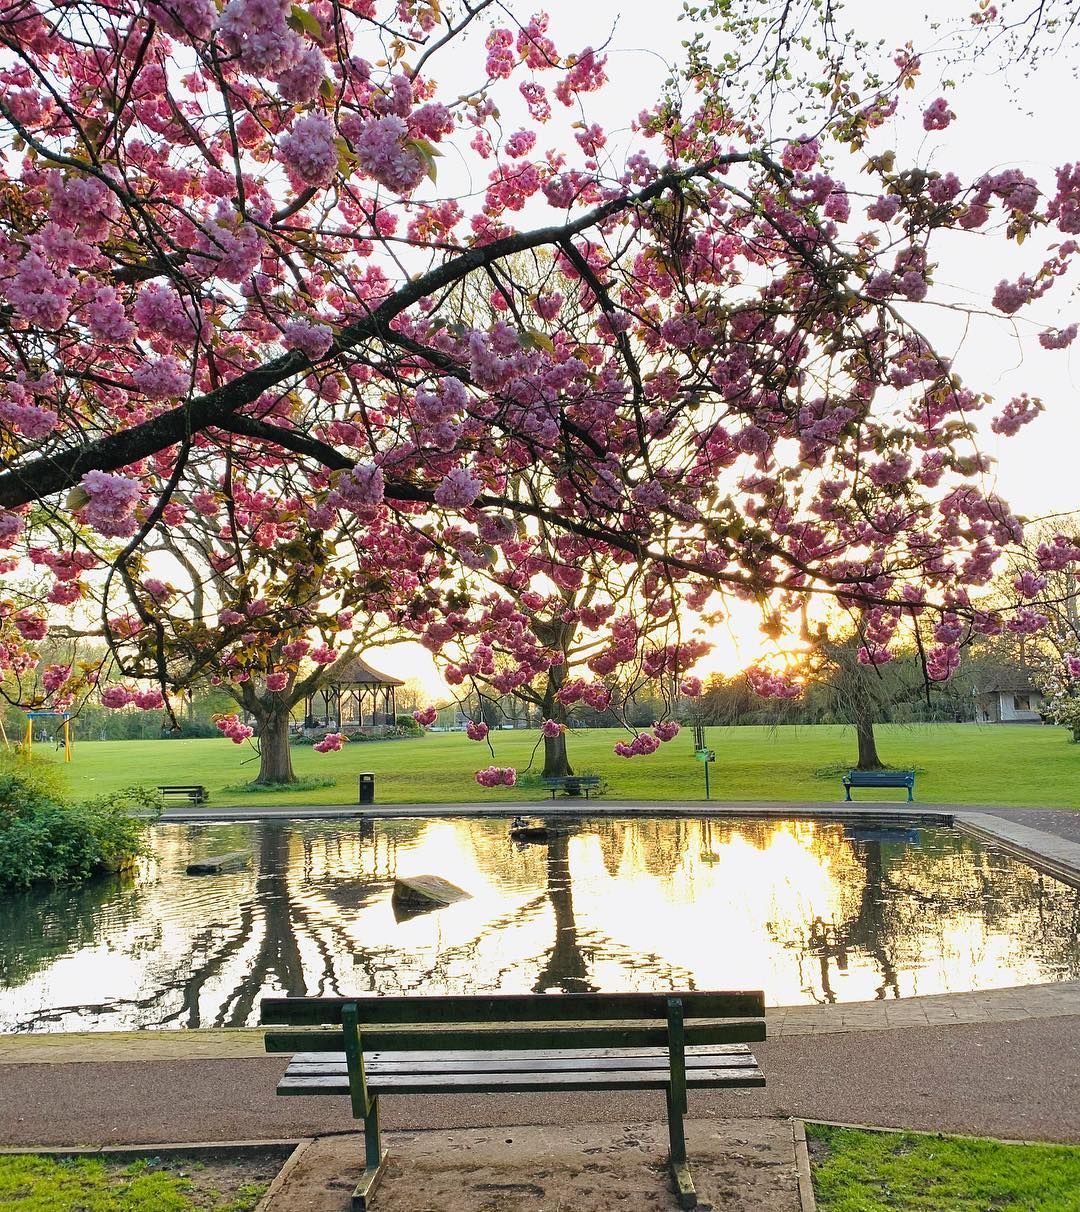 Sunset And Cherry Blossom Photography Somerset Photo Photographer Photoshoot Sunset Sunset And Cherry Blossom Cherry Blossom Blossom Sunset